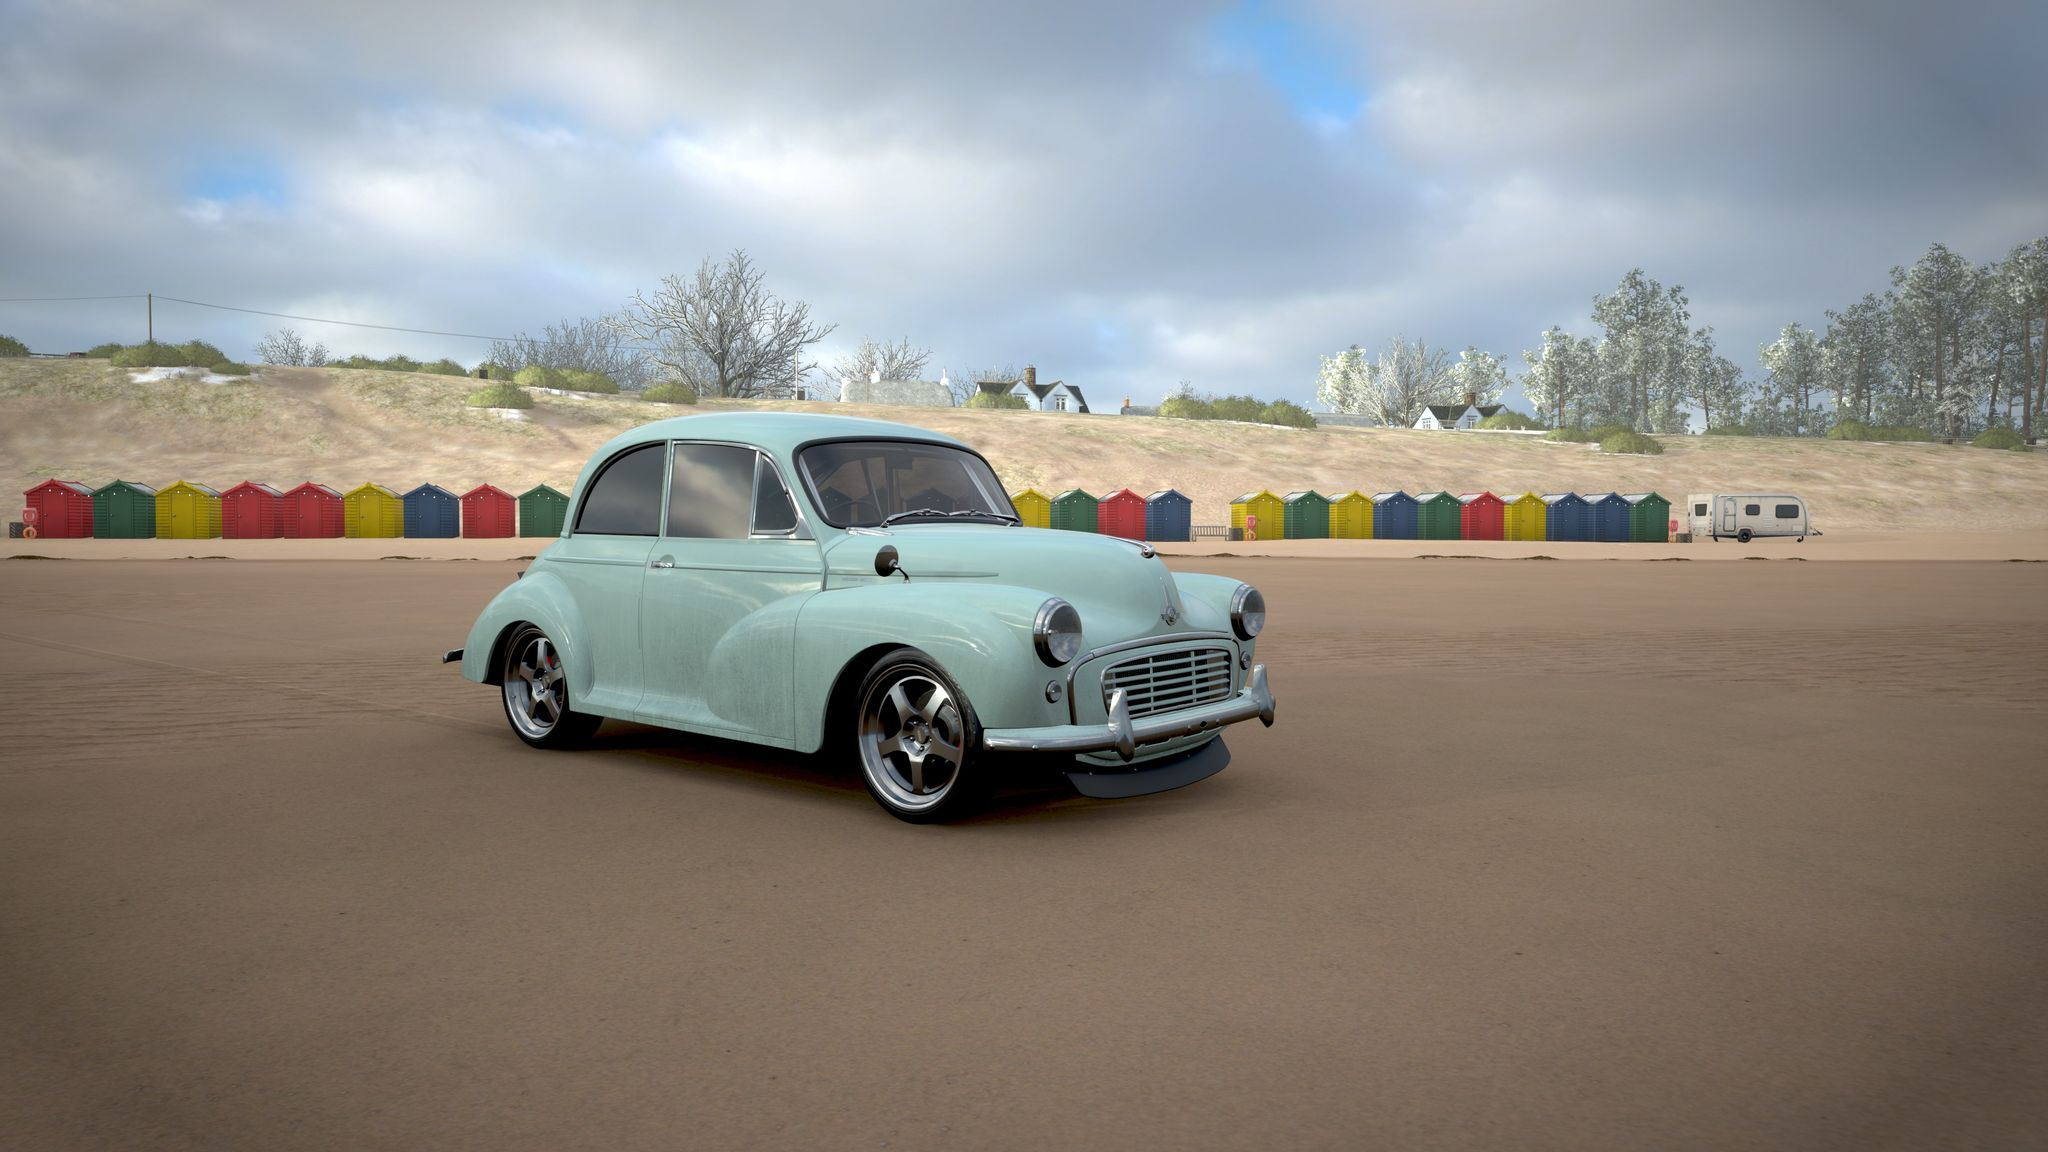 A screenshot from Forza Horizon 4 showing a pale baby blue Morris Minor sitting on a beach in front of a row of those weird little beach hut things the Poms love. The car has been lowered and has big shiny chrome rims to go with the shiny chrome front and rear bumpers.